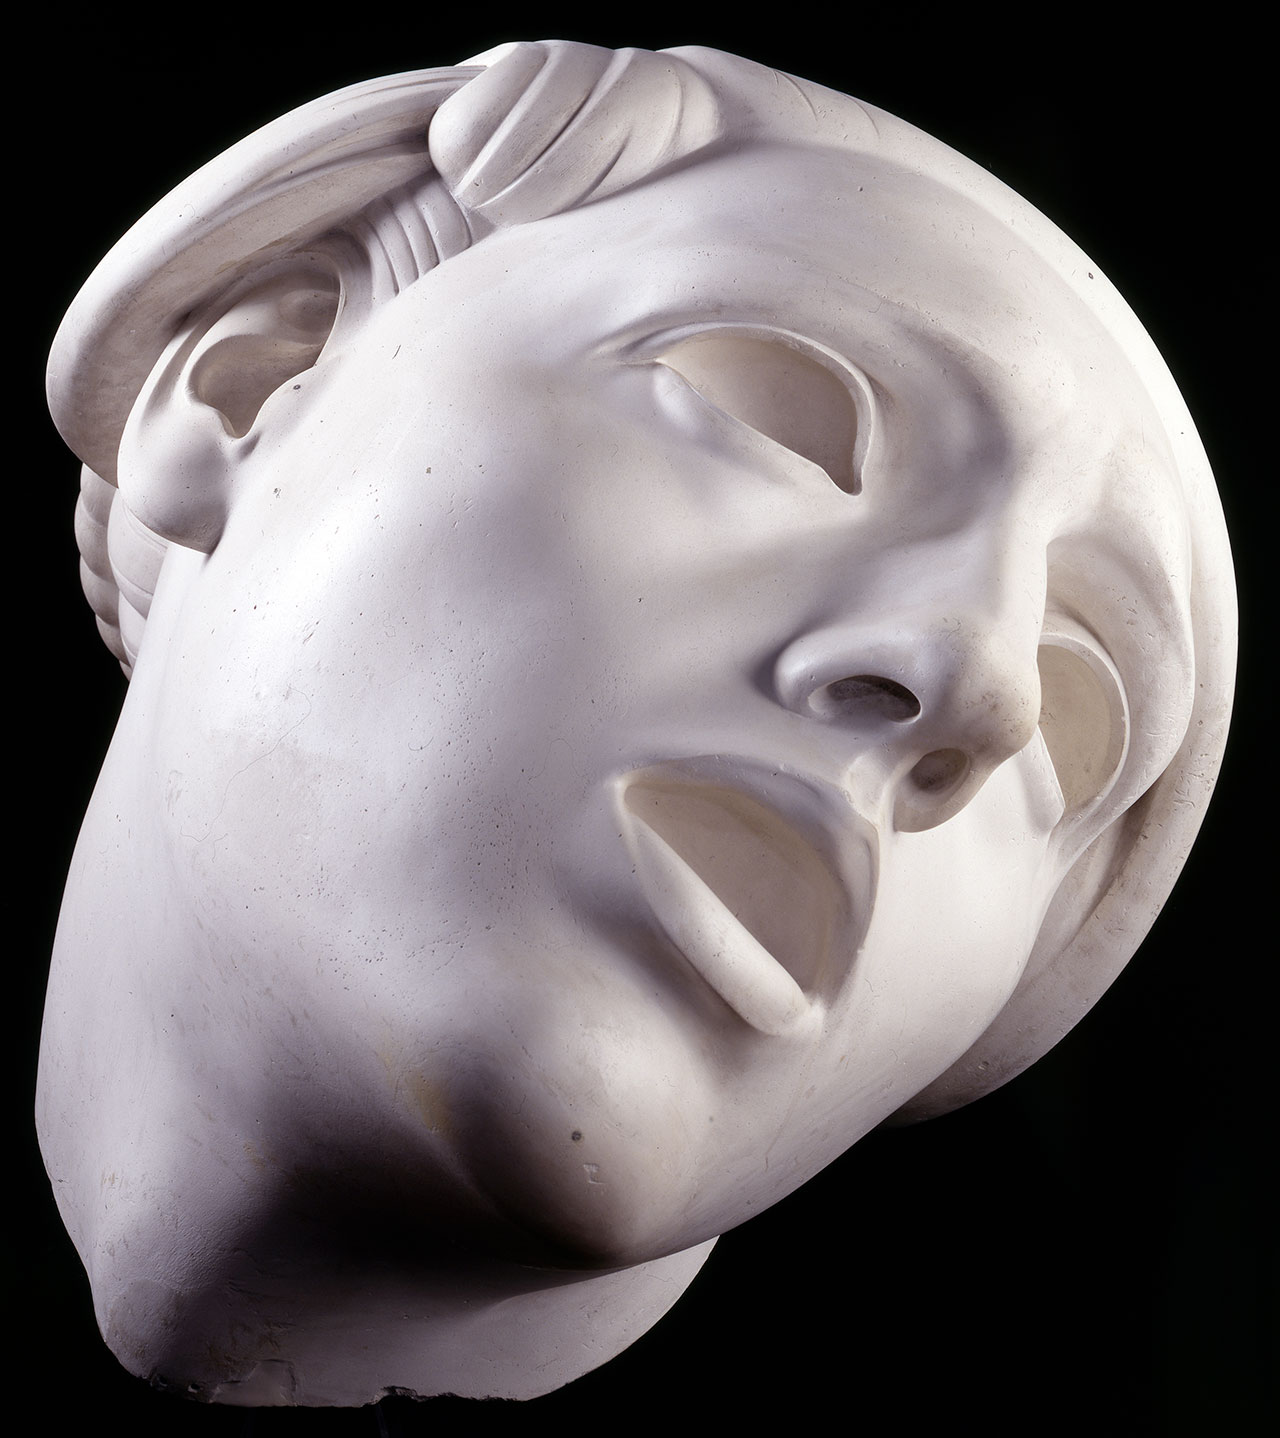 Adolfo Wildt, Il puro folle (Parsifal), 1930. Plaster work, 71 x 73 x 80 cm. International Gallery of Modern Art of Ca 'Pesaro, Venice. Photo Franzini C. © Stock Photo - Fondazione Musei Civici di Venezia.